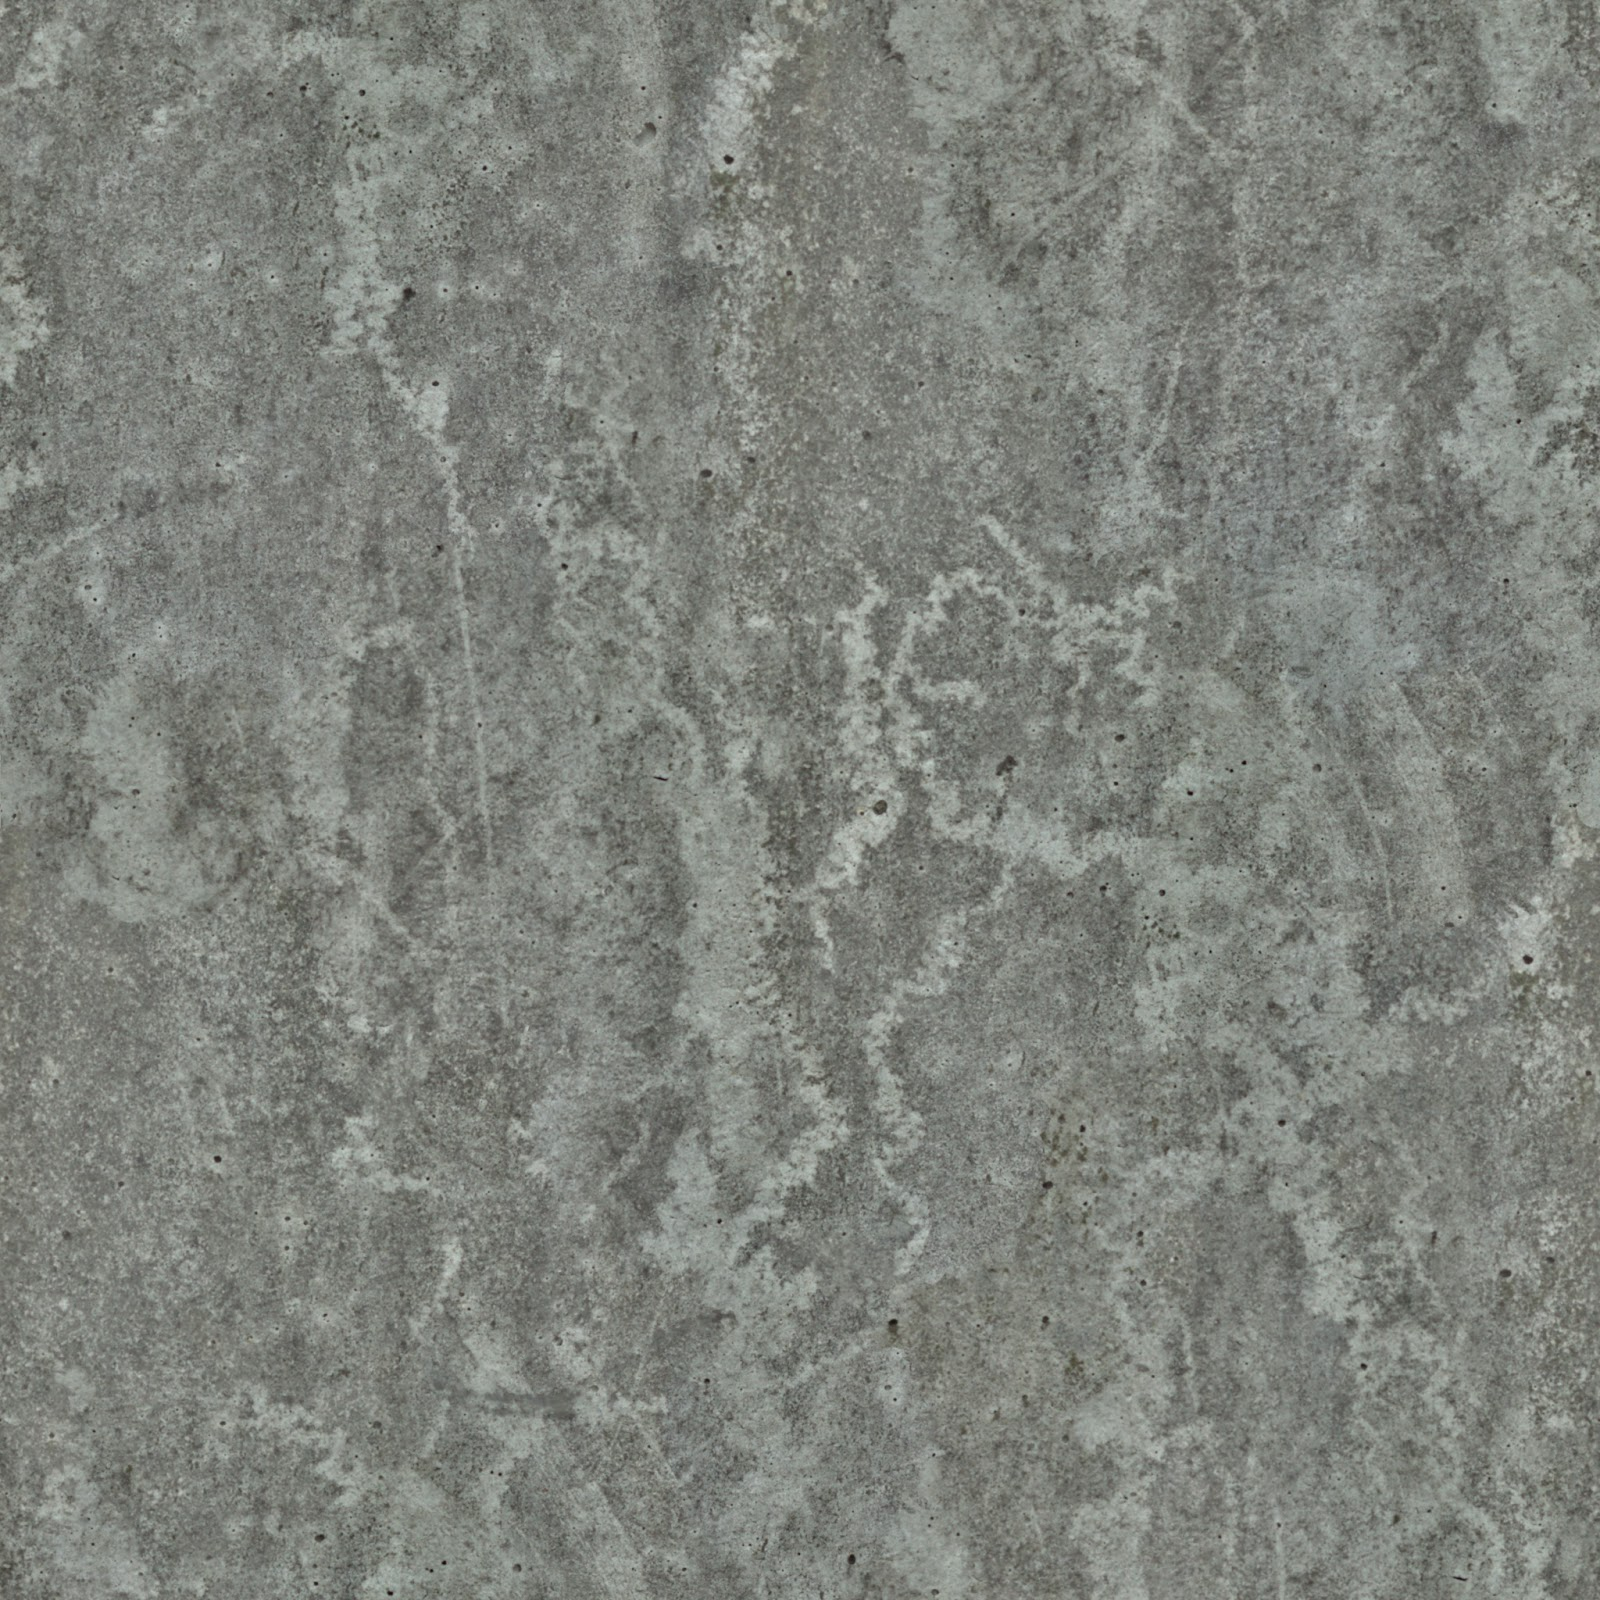 High Resolution Seamless Textures Concrete 5 wall smooth dirt